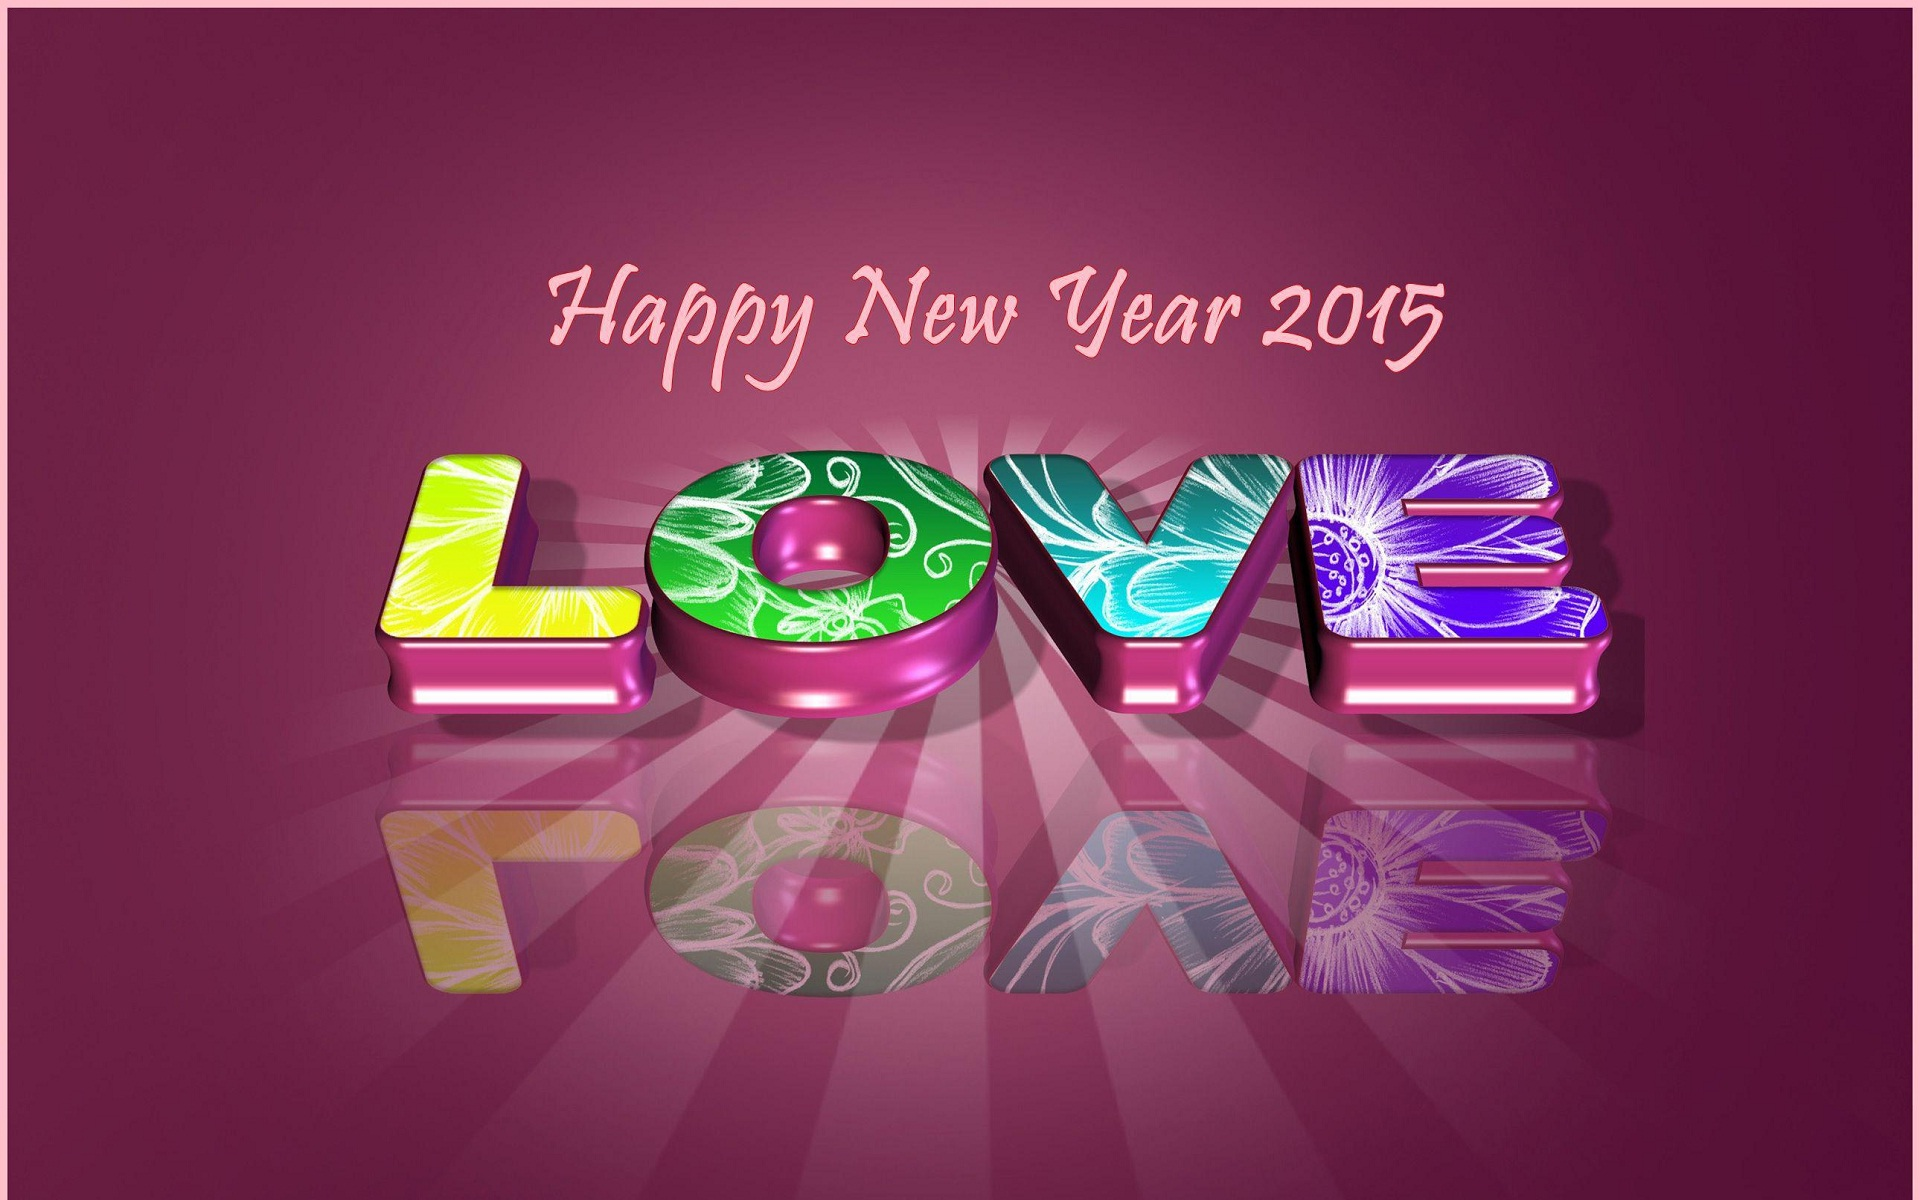 Happy New Year 2015 Love wallpaper   New hd wallpaperNew 1920x1200